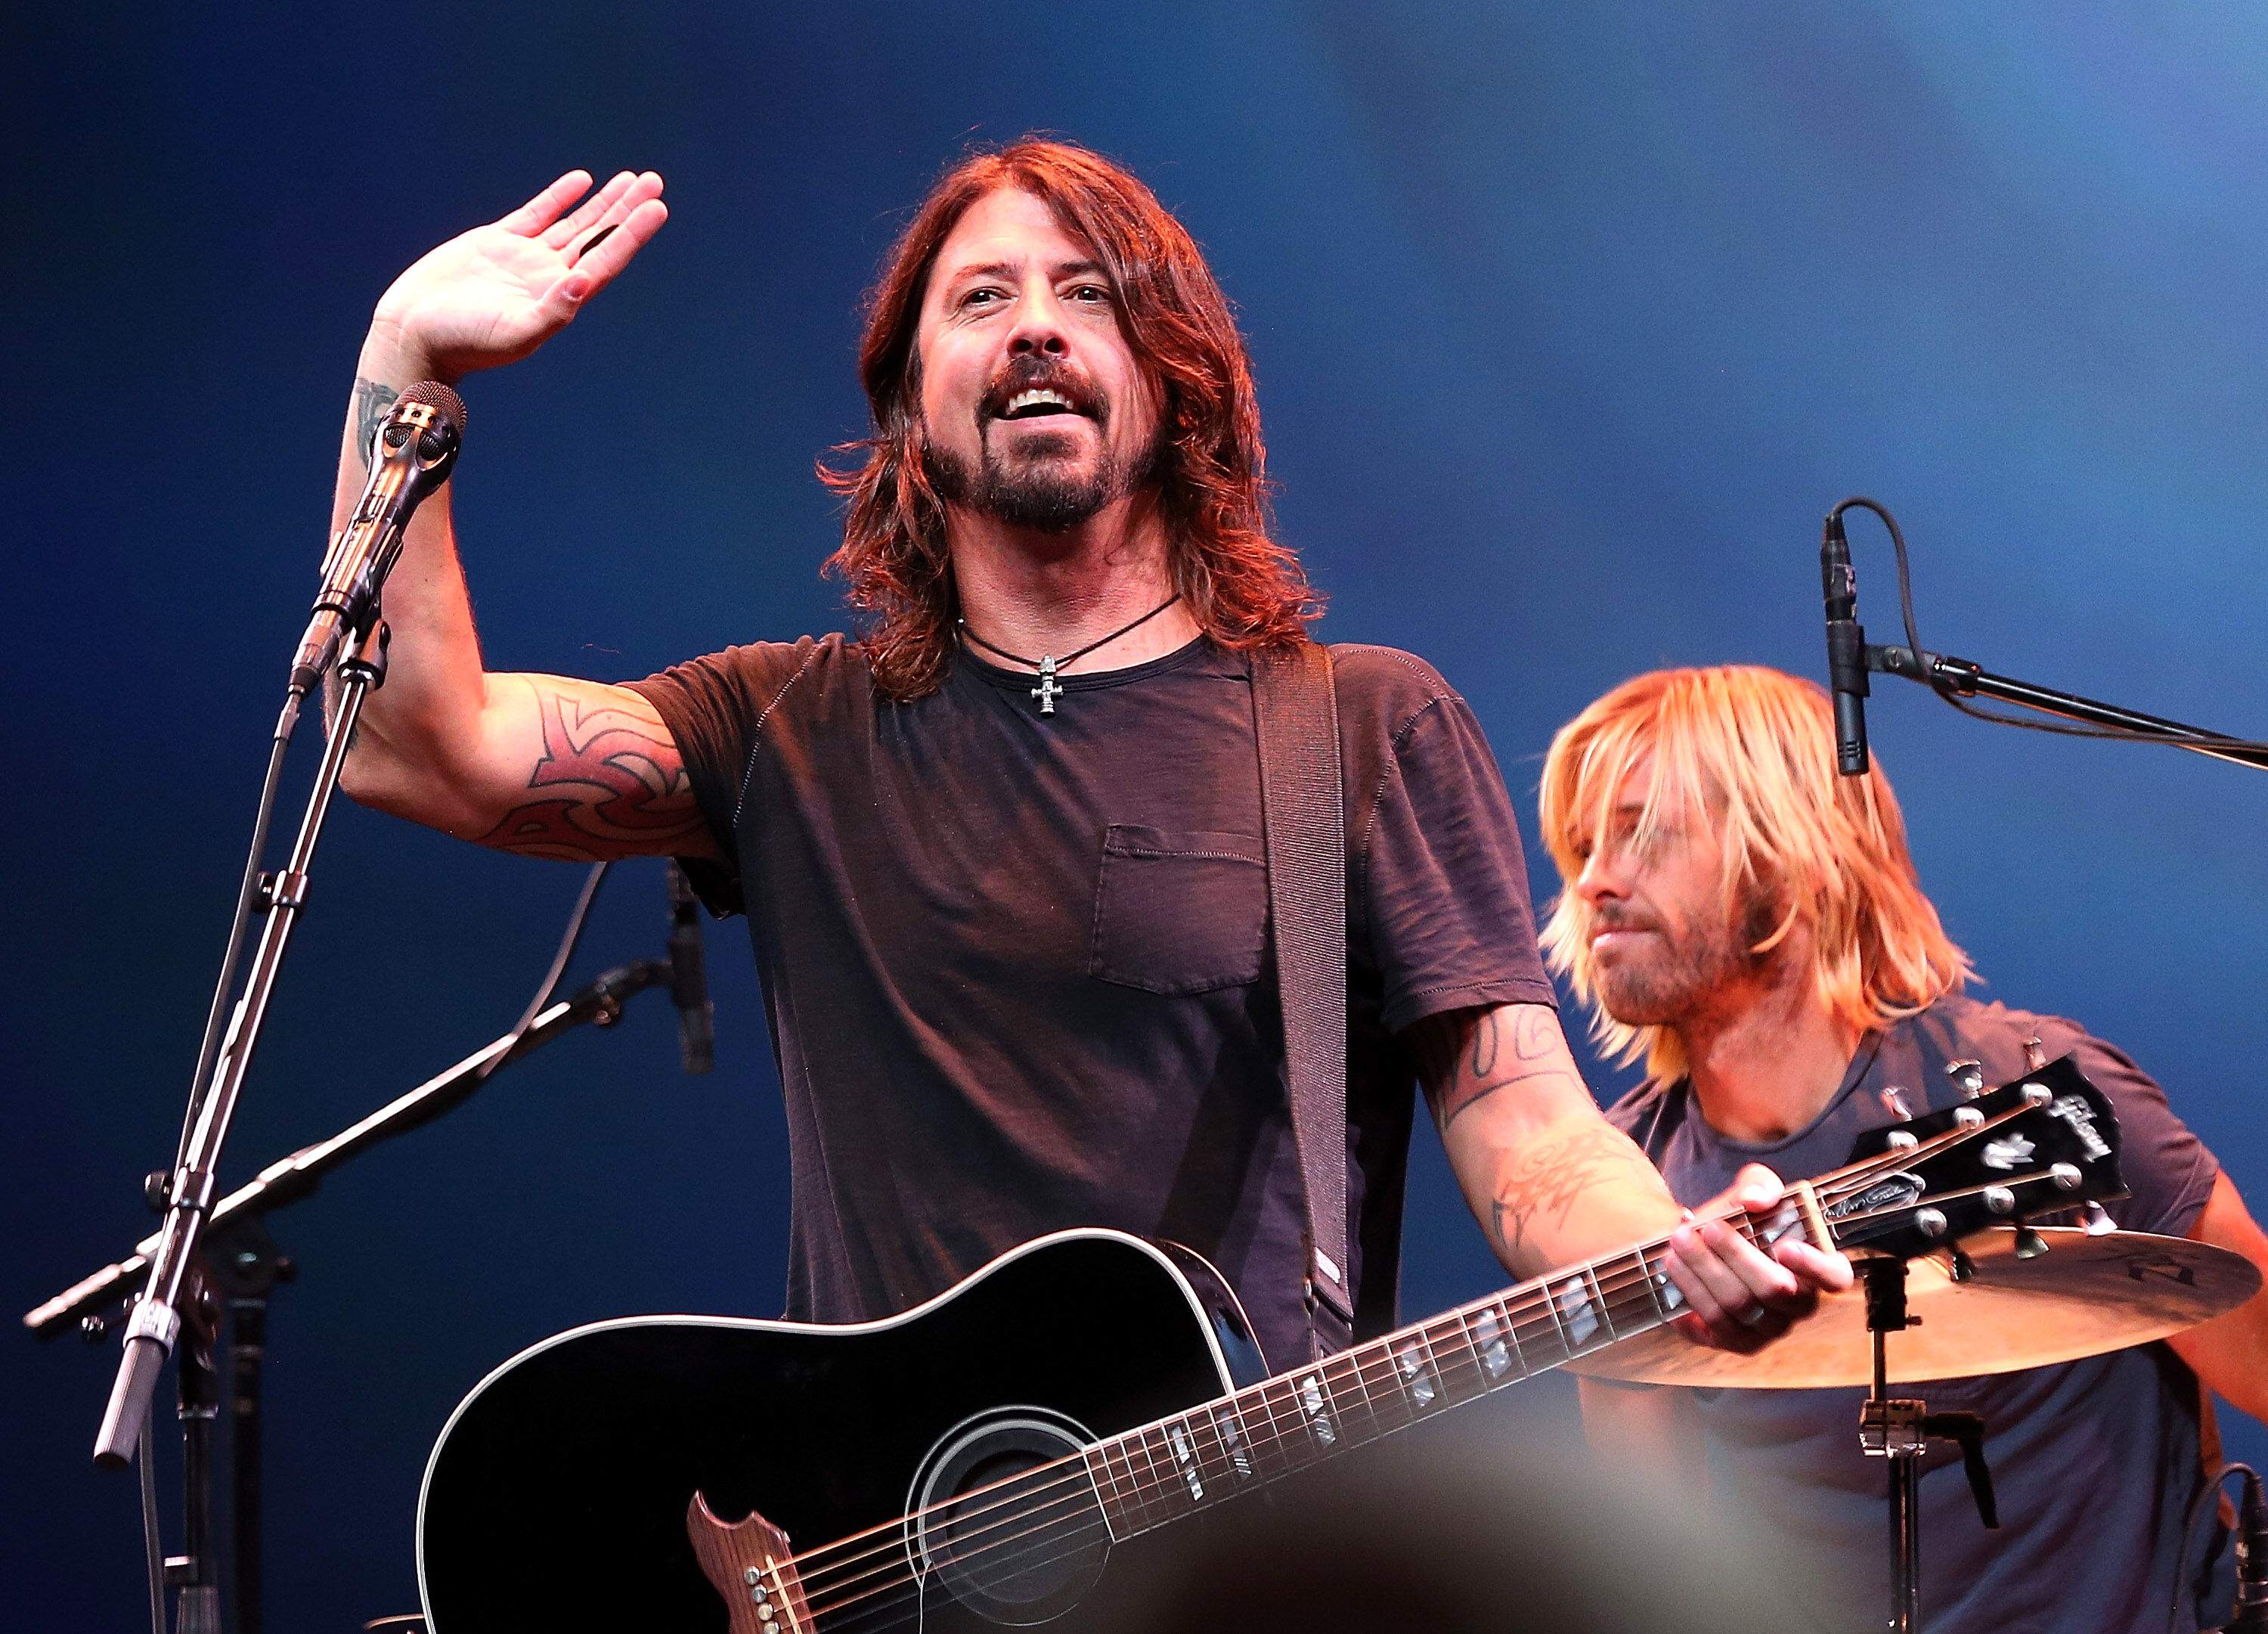 Foo Fighters' Bee Gees tribute band releasing music in honor of Record Store Day